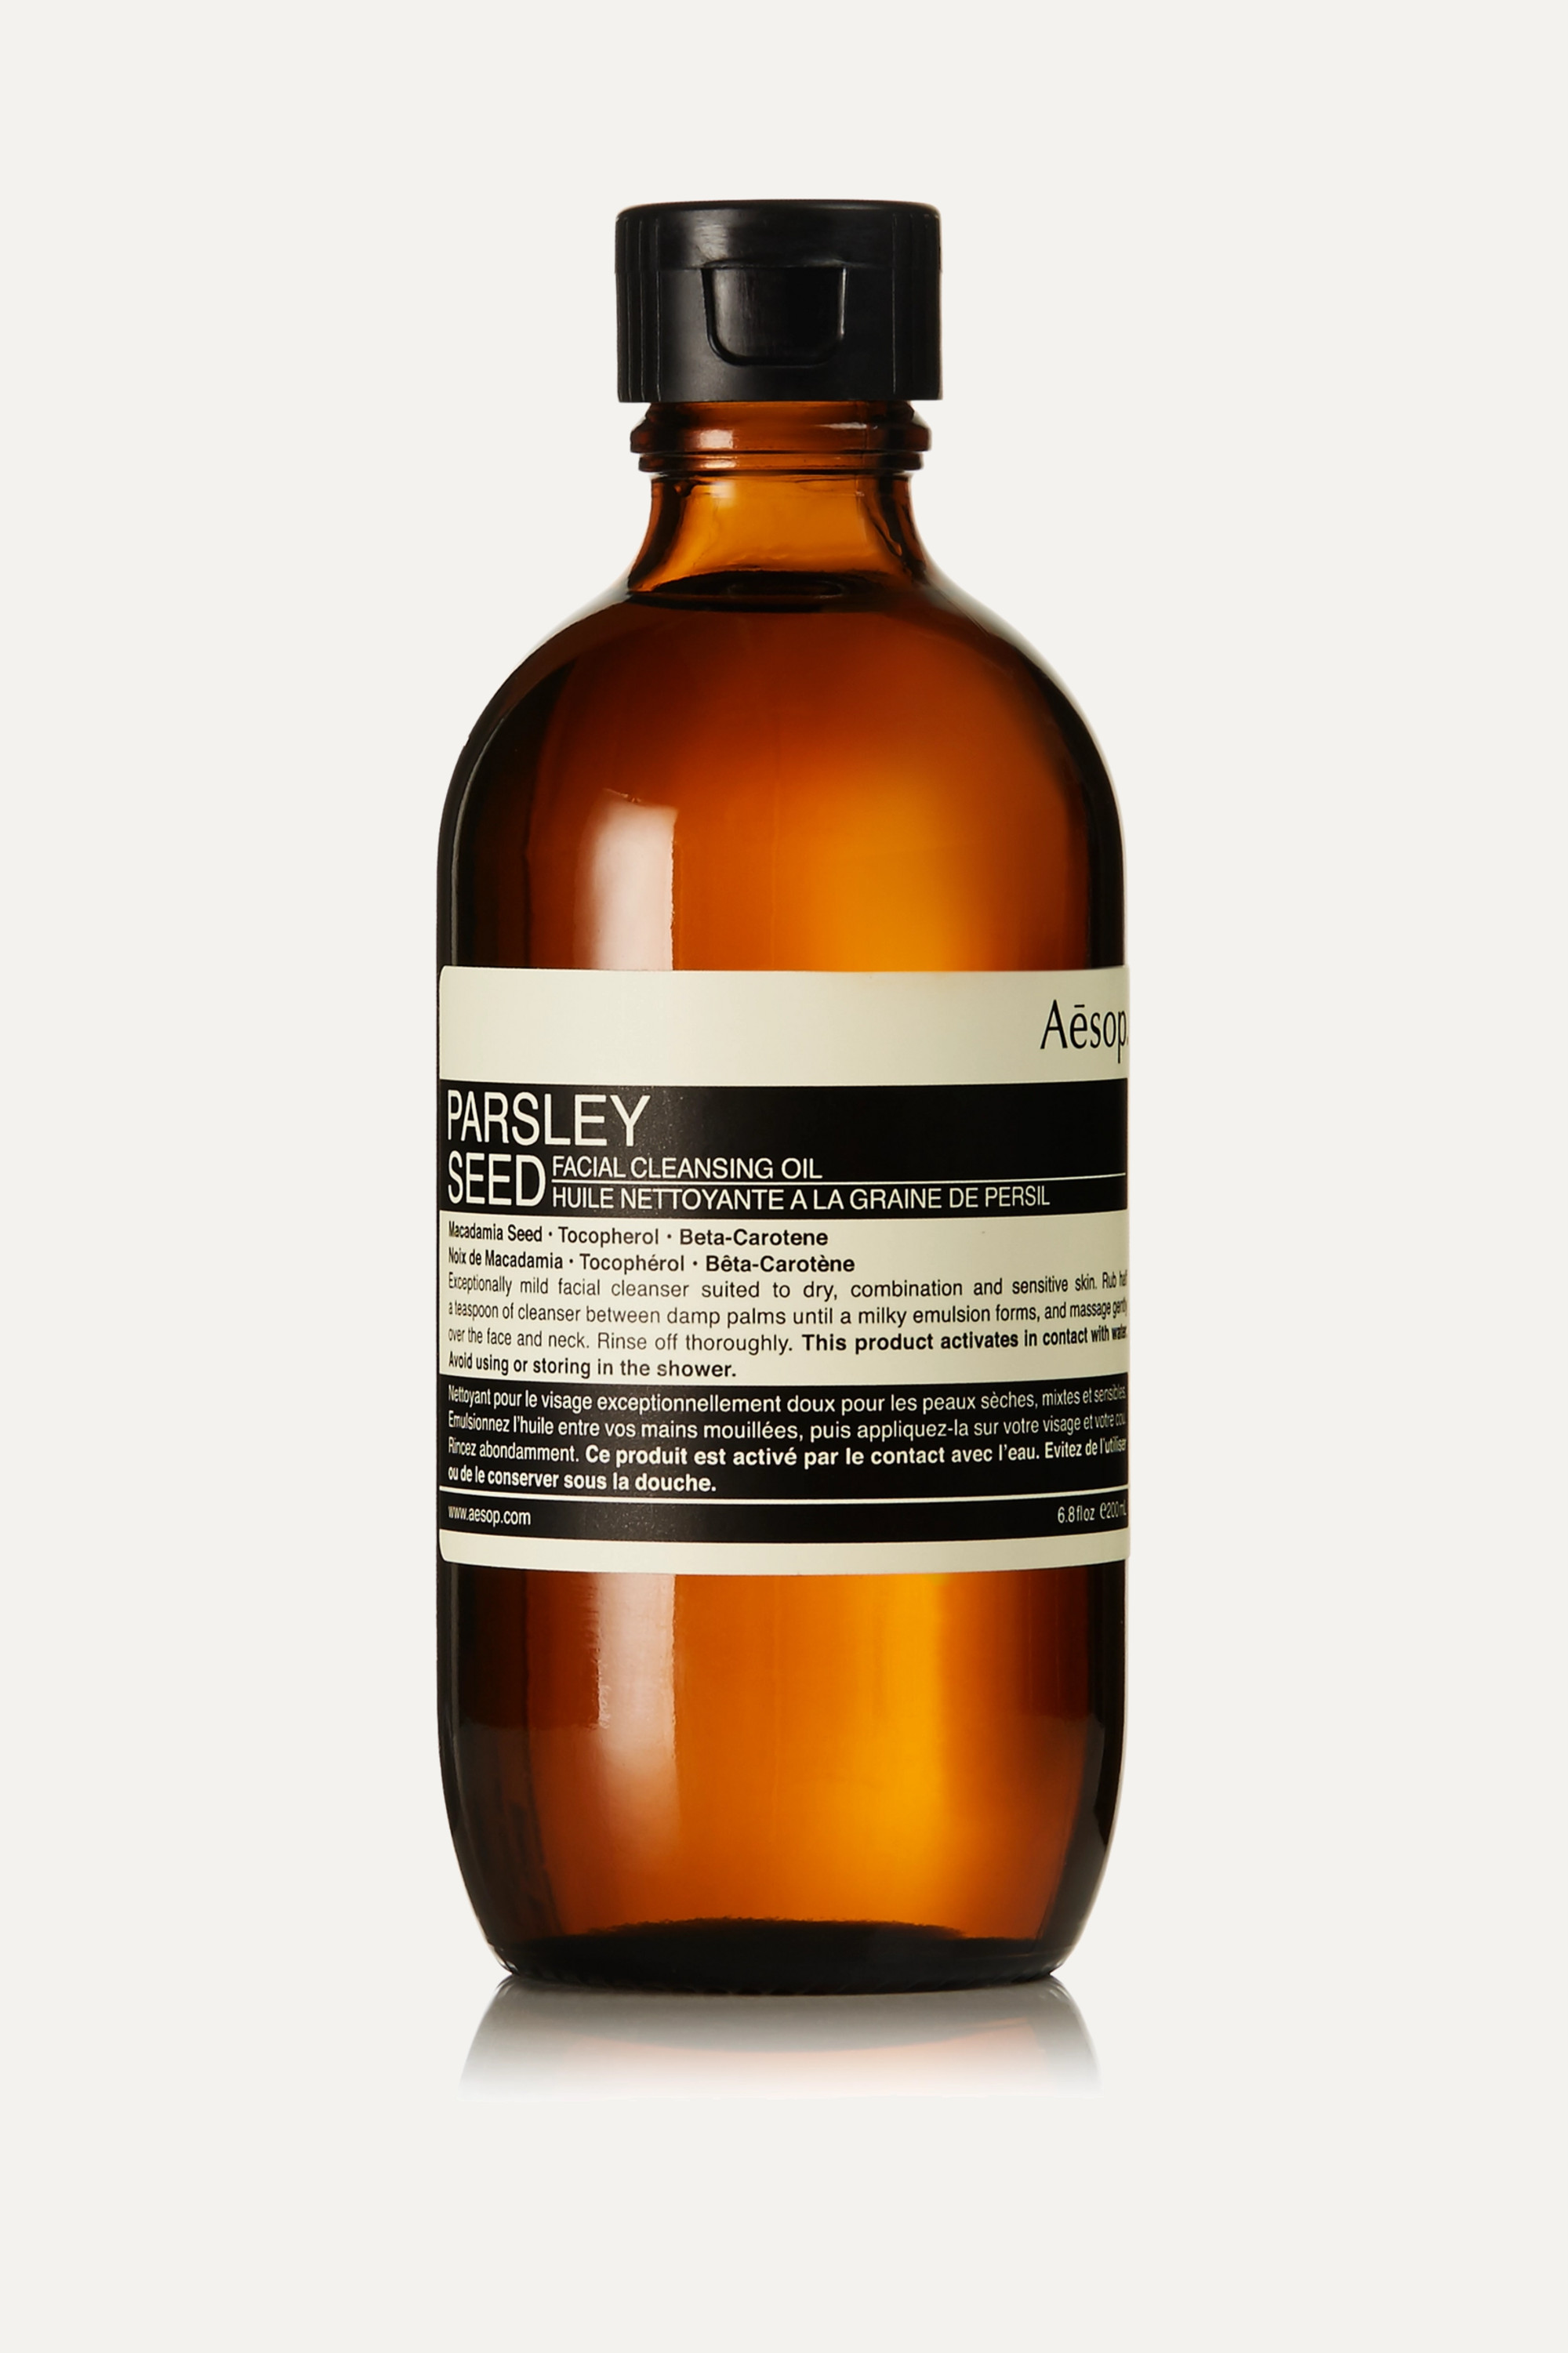 Aesop Parsley Seed Facial Cleansing Oil, 200ml